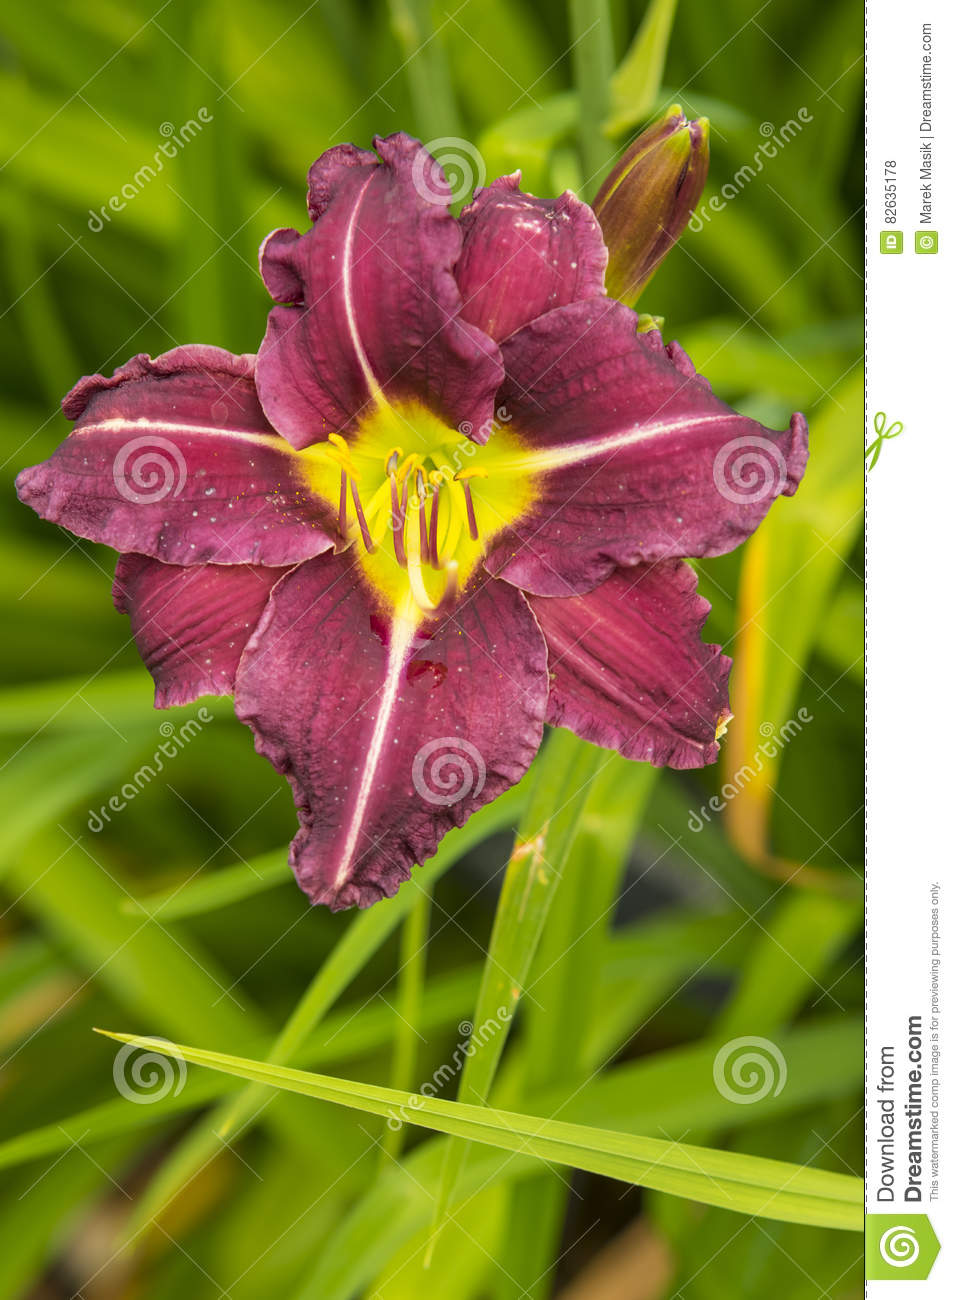 Purple Flower Hibiscus Stock Photo Image Of Close Herb 82635178